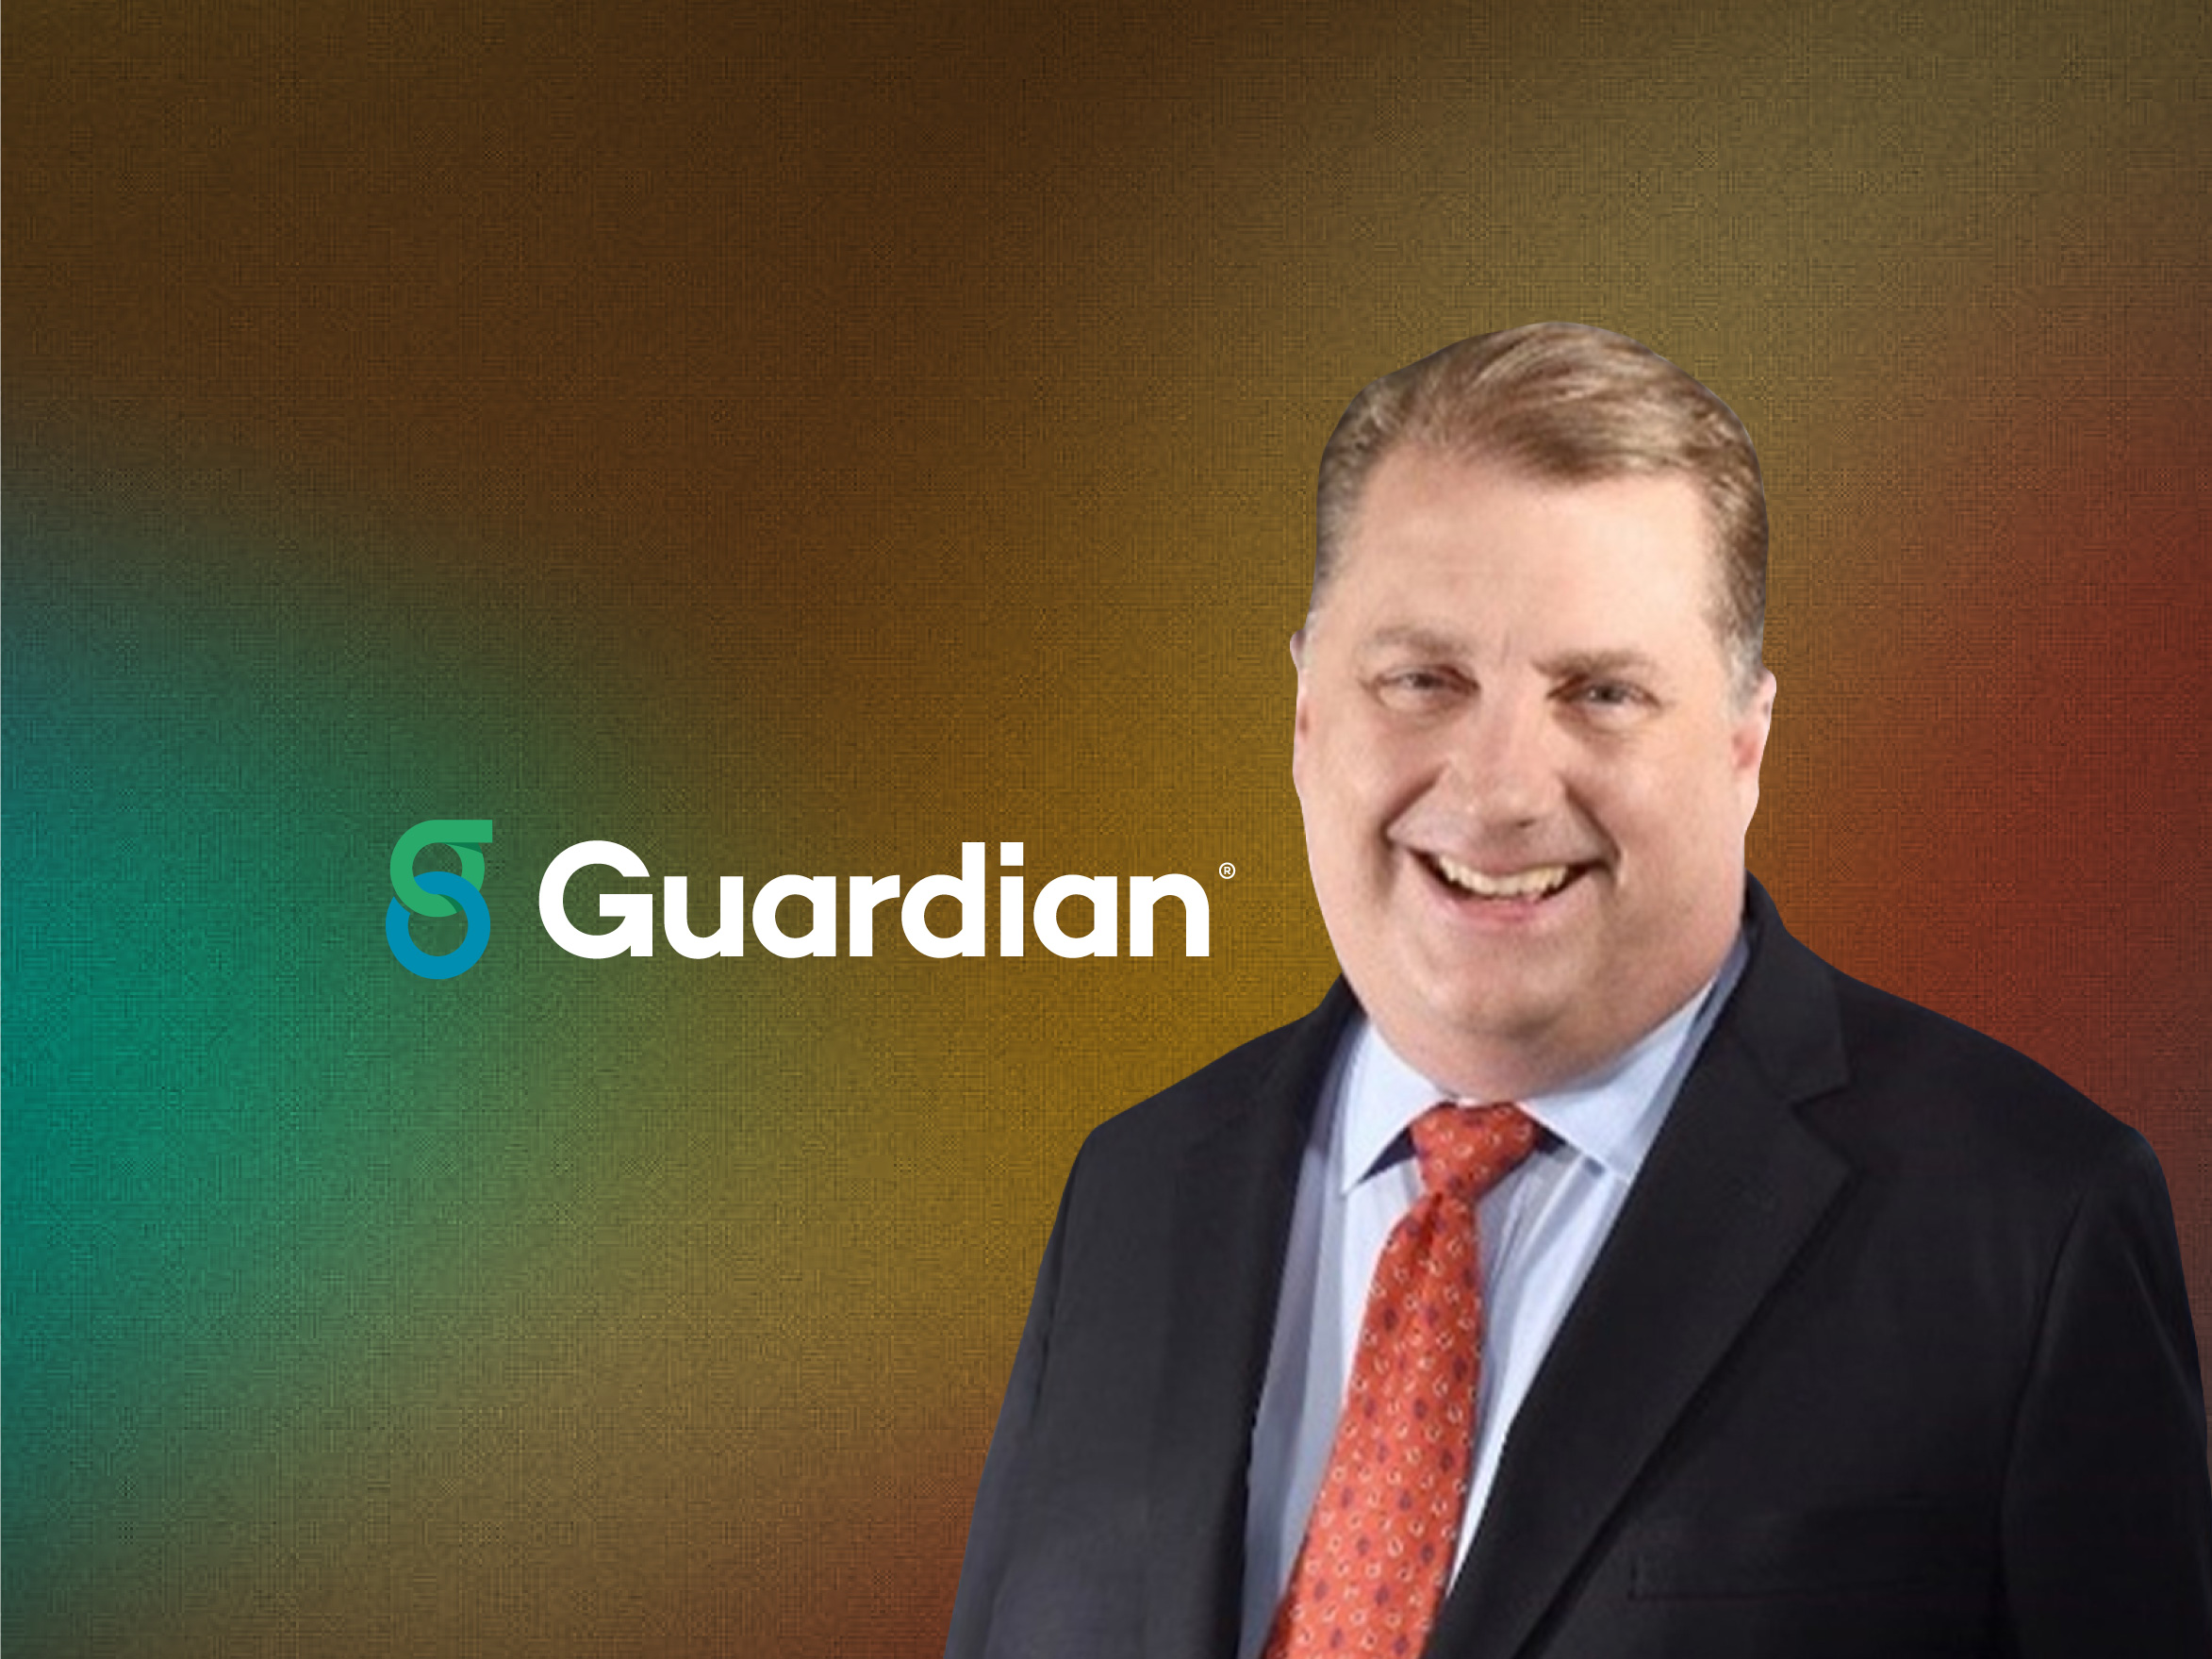 Global Fintech Interview with Christopher Smith, Head of Group Benefits at Guardian Life